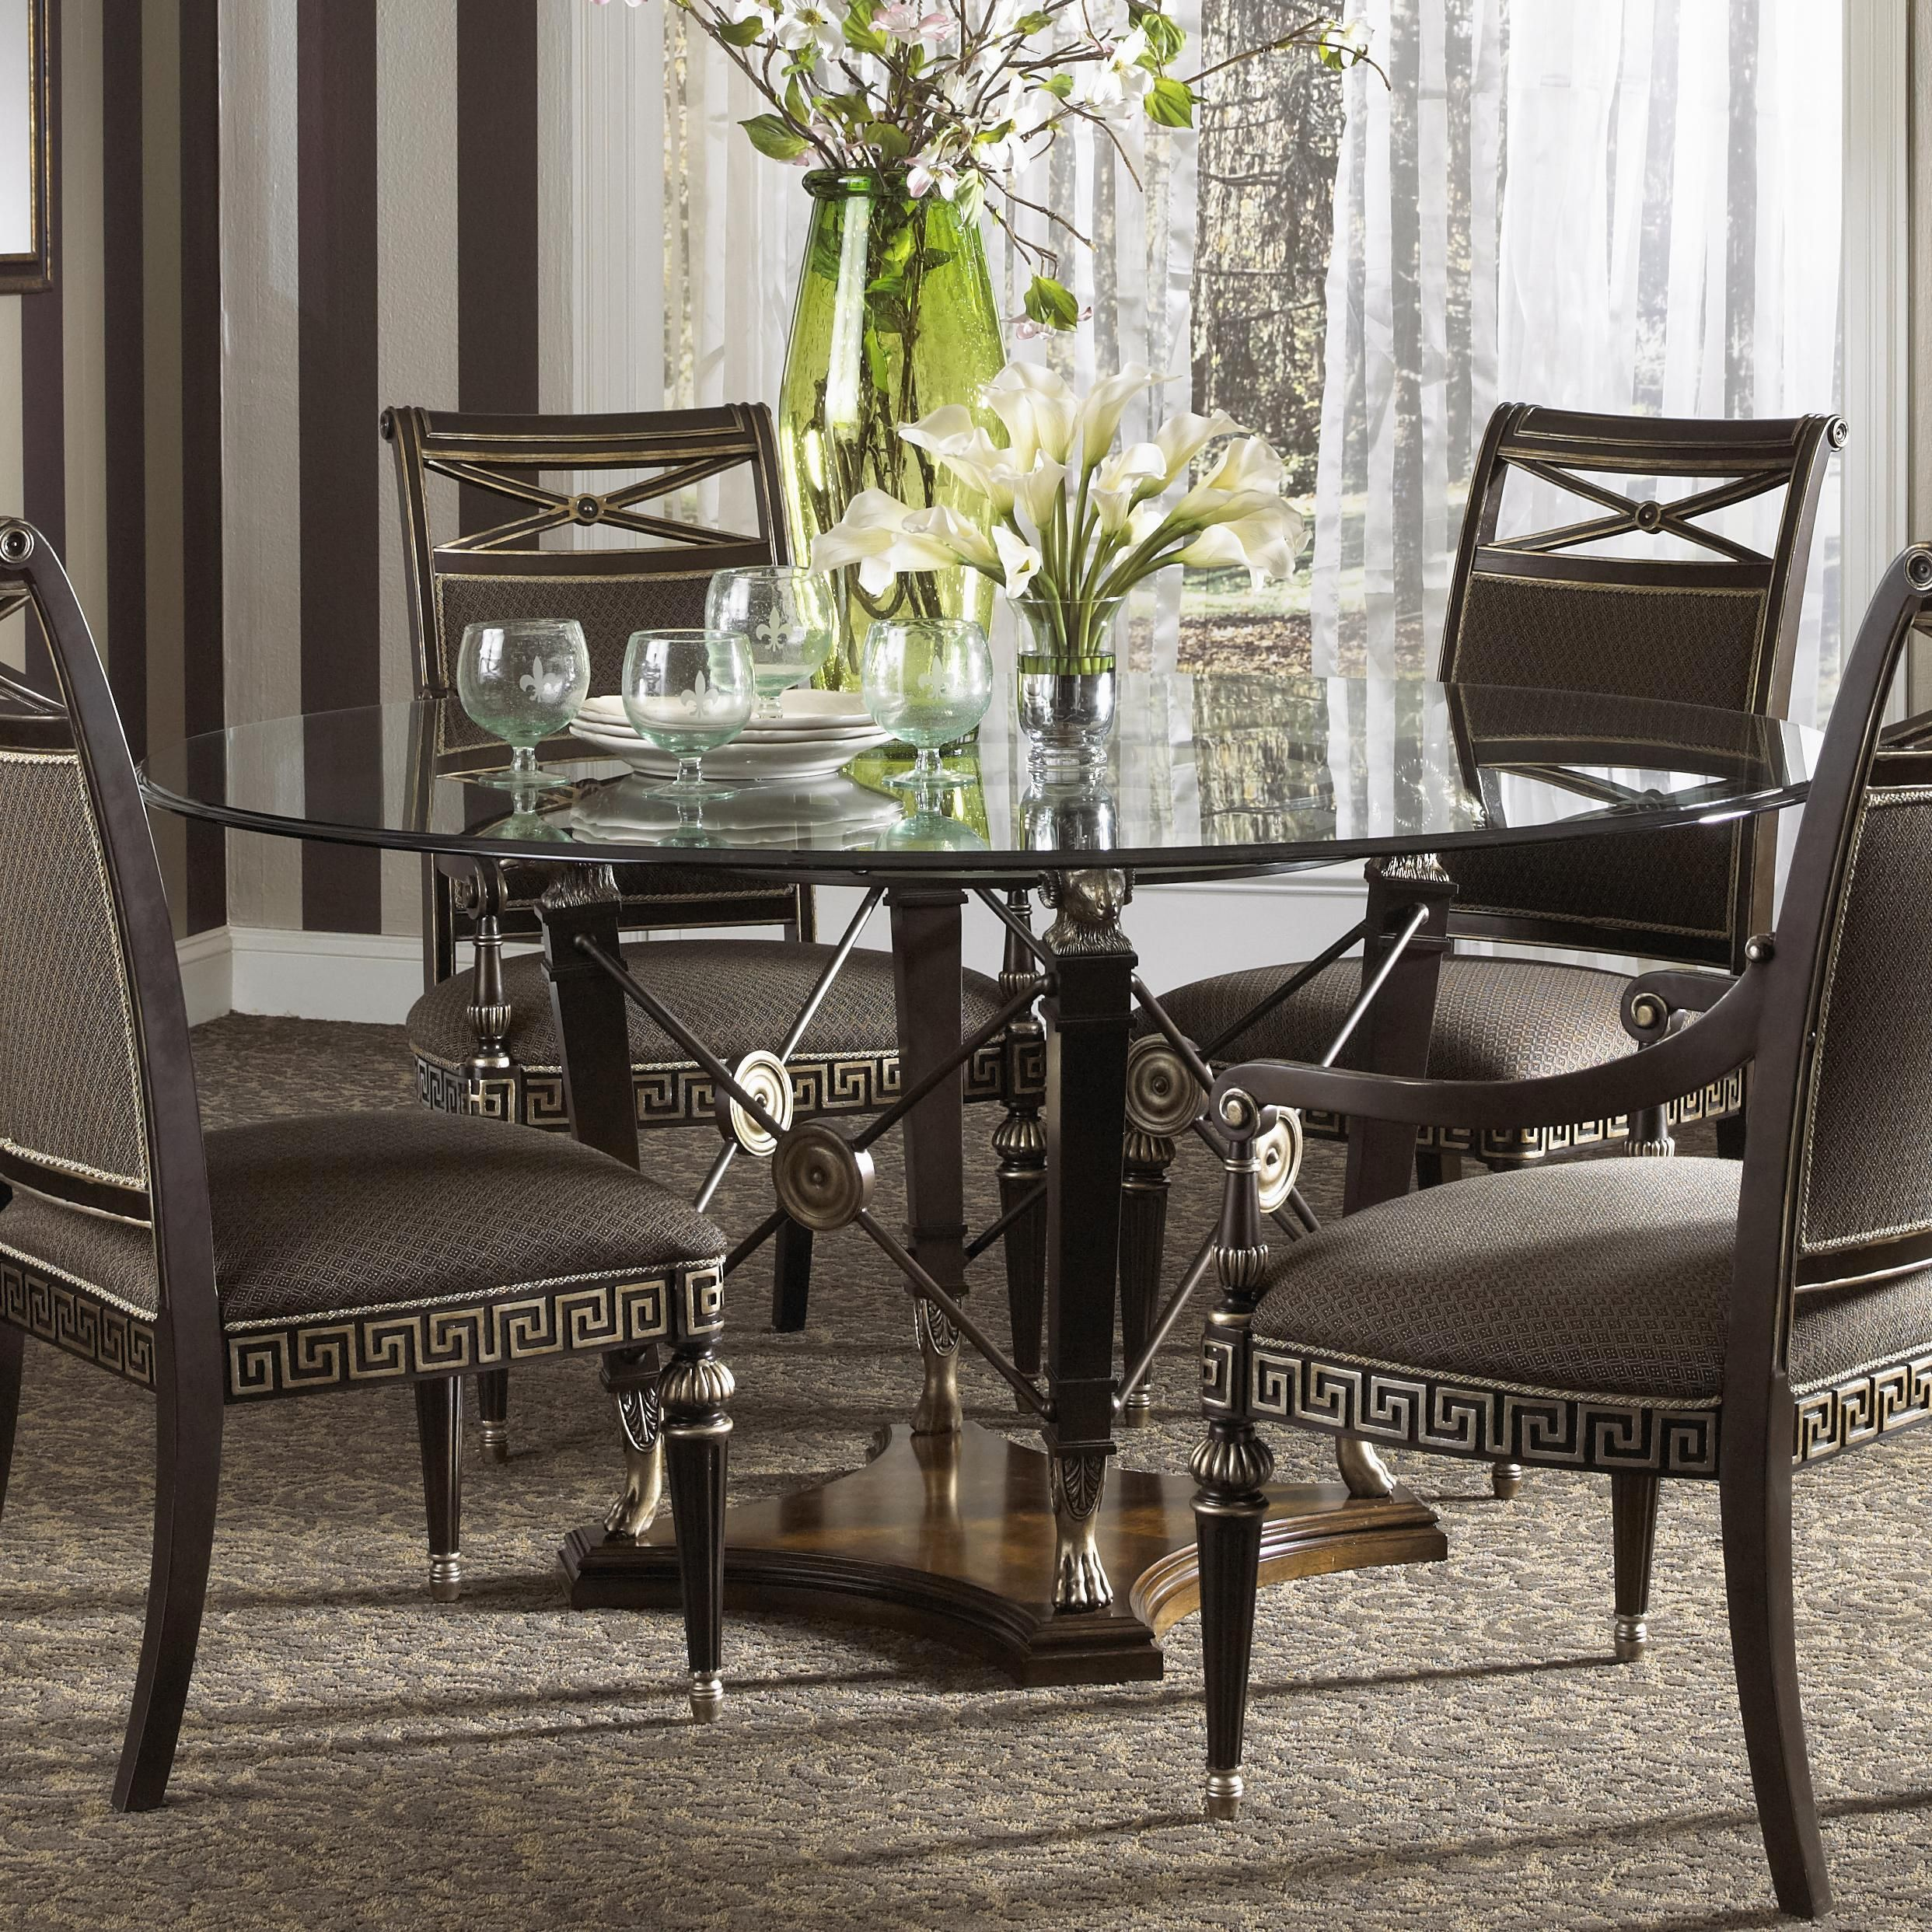 Dining Room Formal Dining Room Tables And Chairs Glass Coffee Table Centerpieces Oval Glass T Round Dining Room Sets Round Dining Room Fine Furniture Design